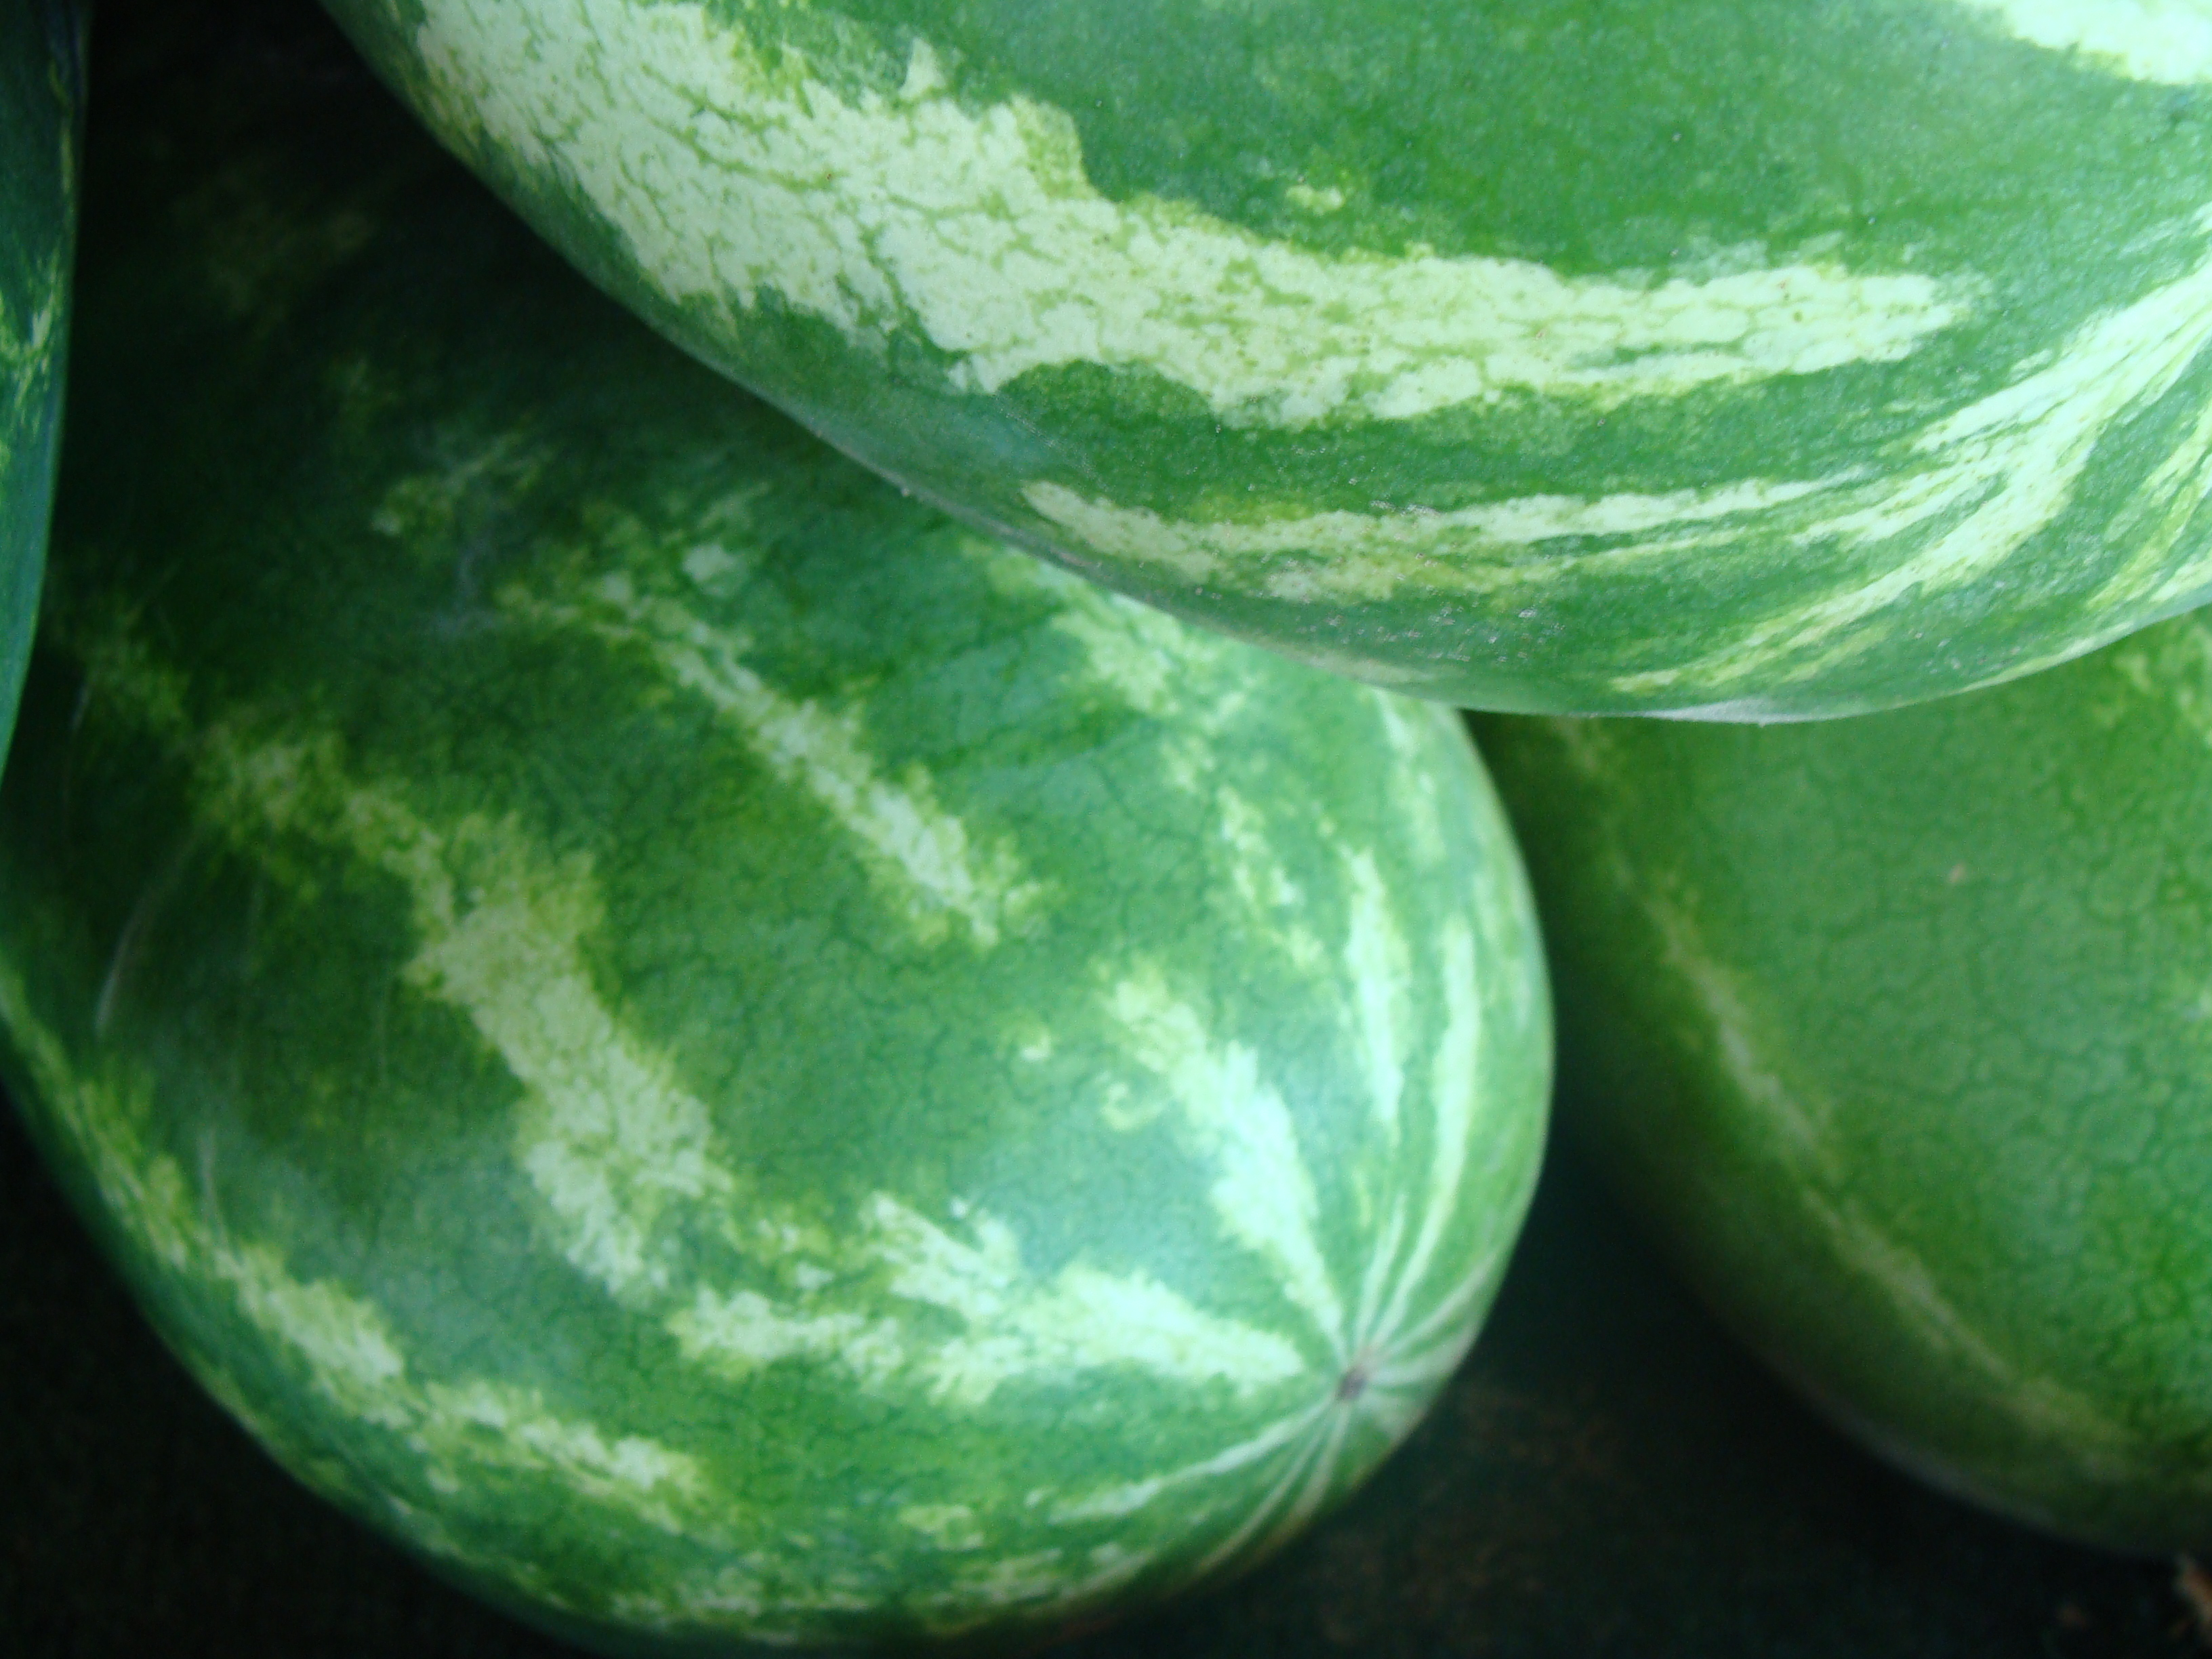 I love the green stripes on these watermelons